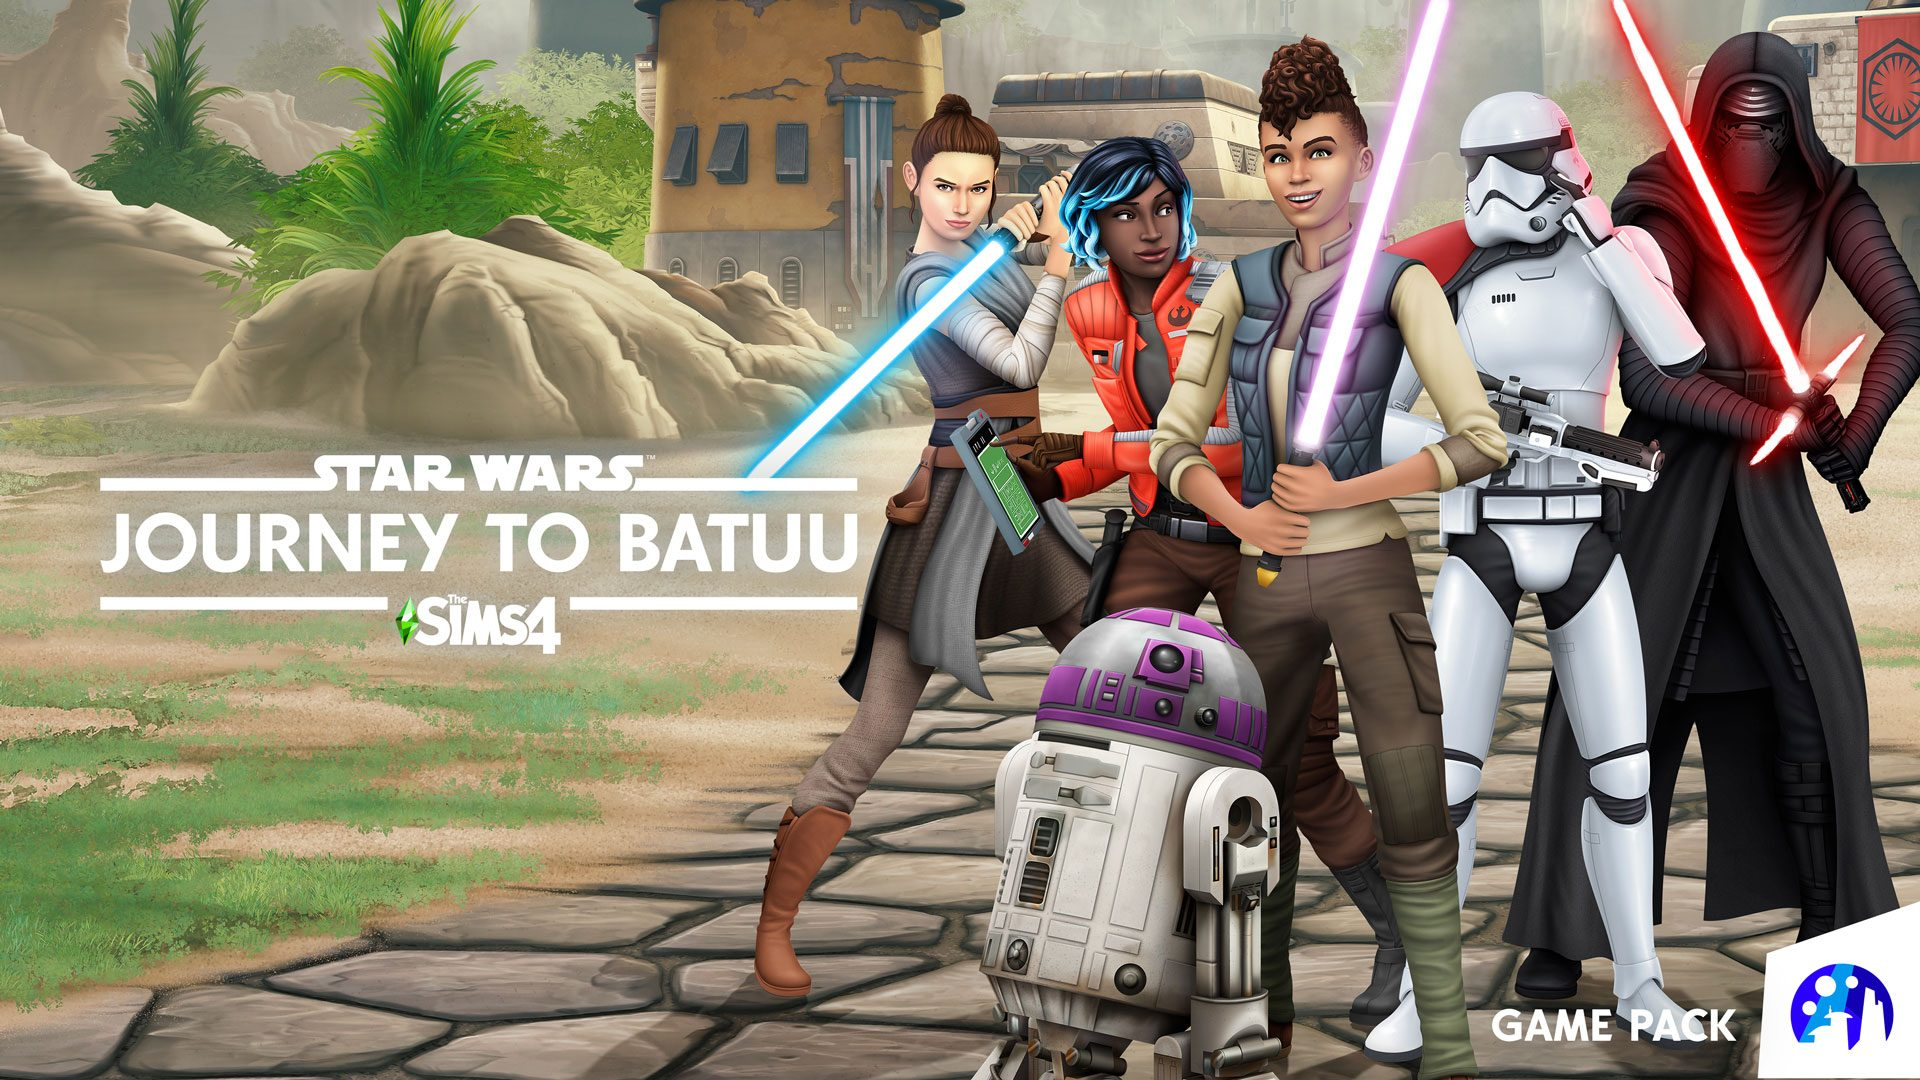 The Sims 4: Star Wars Journey to Batuu Plastation